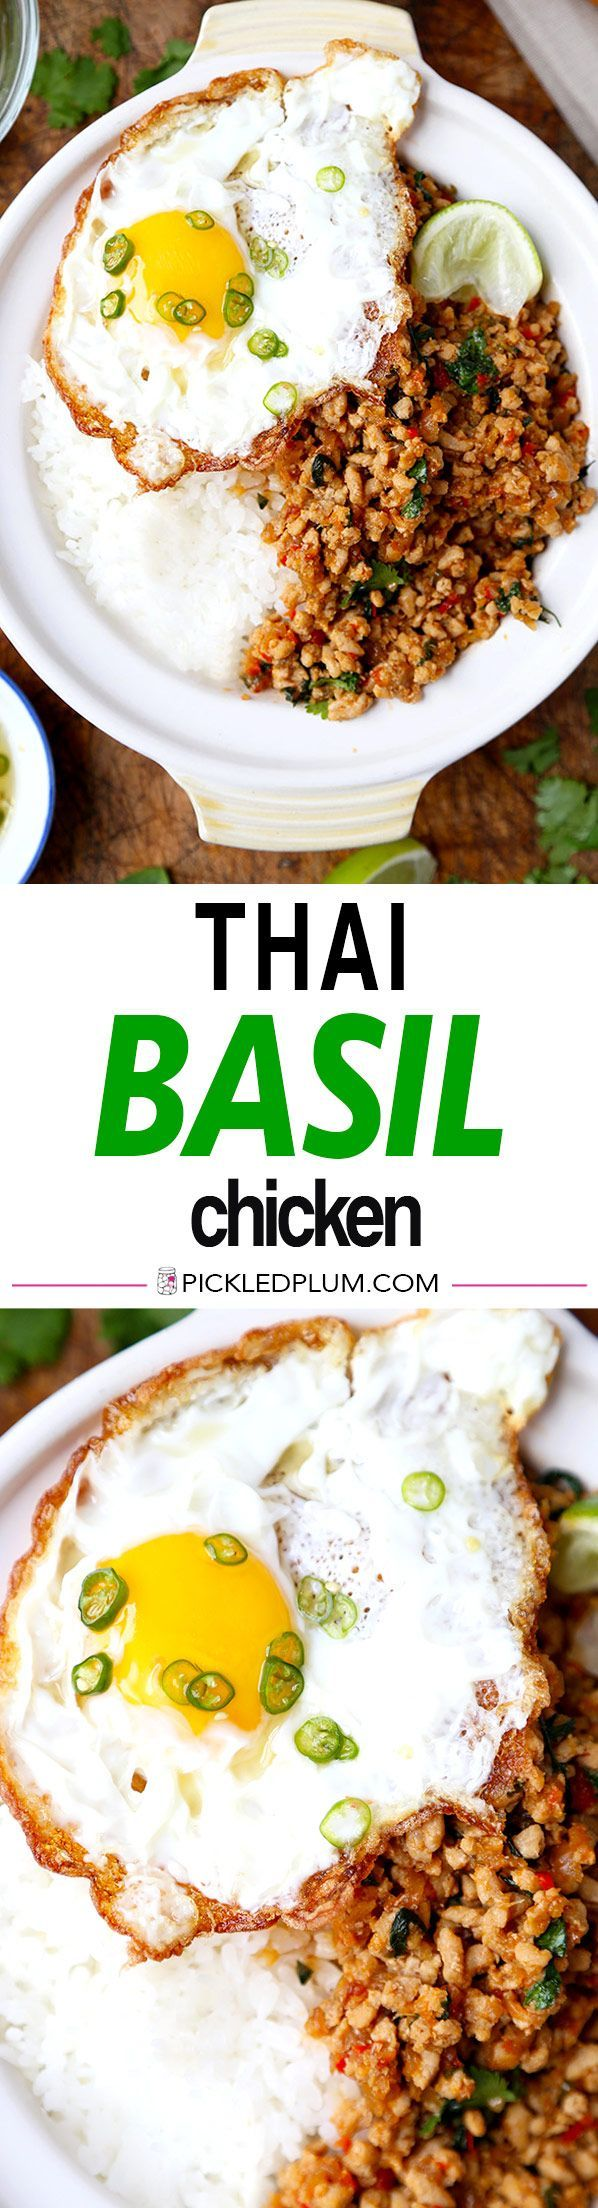 Thai Basil Chicken - This easy Thai basil chicken recipe is based on the classic Thai Krapow Gai Kai Dow dish. Its hot, pungent, salty and smoky. Squeeze a little fresh lime juice on top and your taste buds will be dancing in no time! Easy, Thai, recipe, chicken